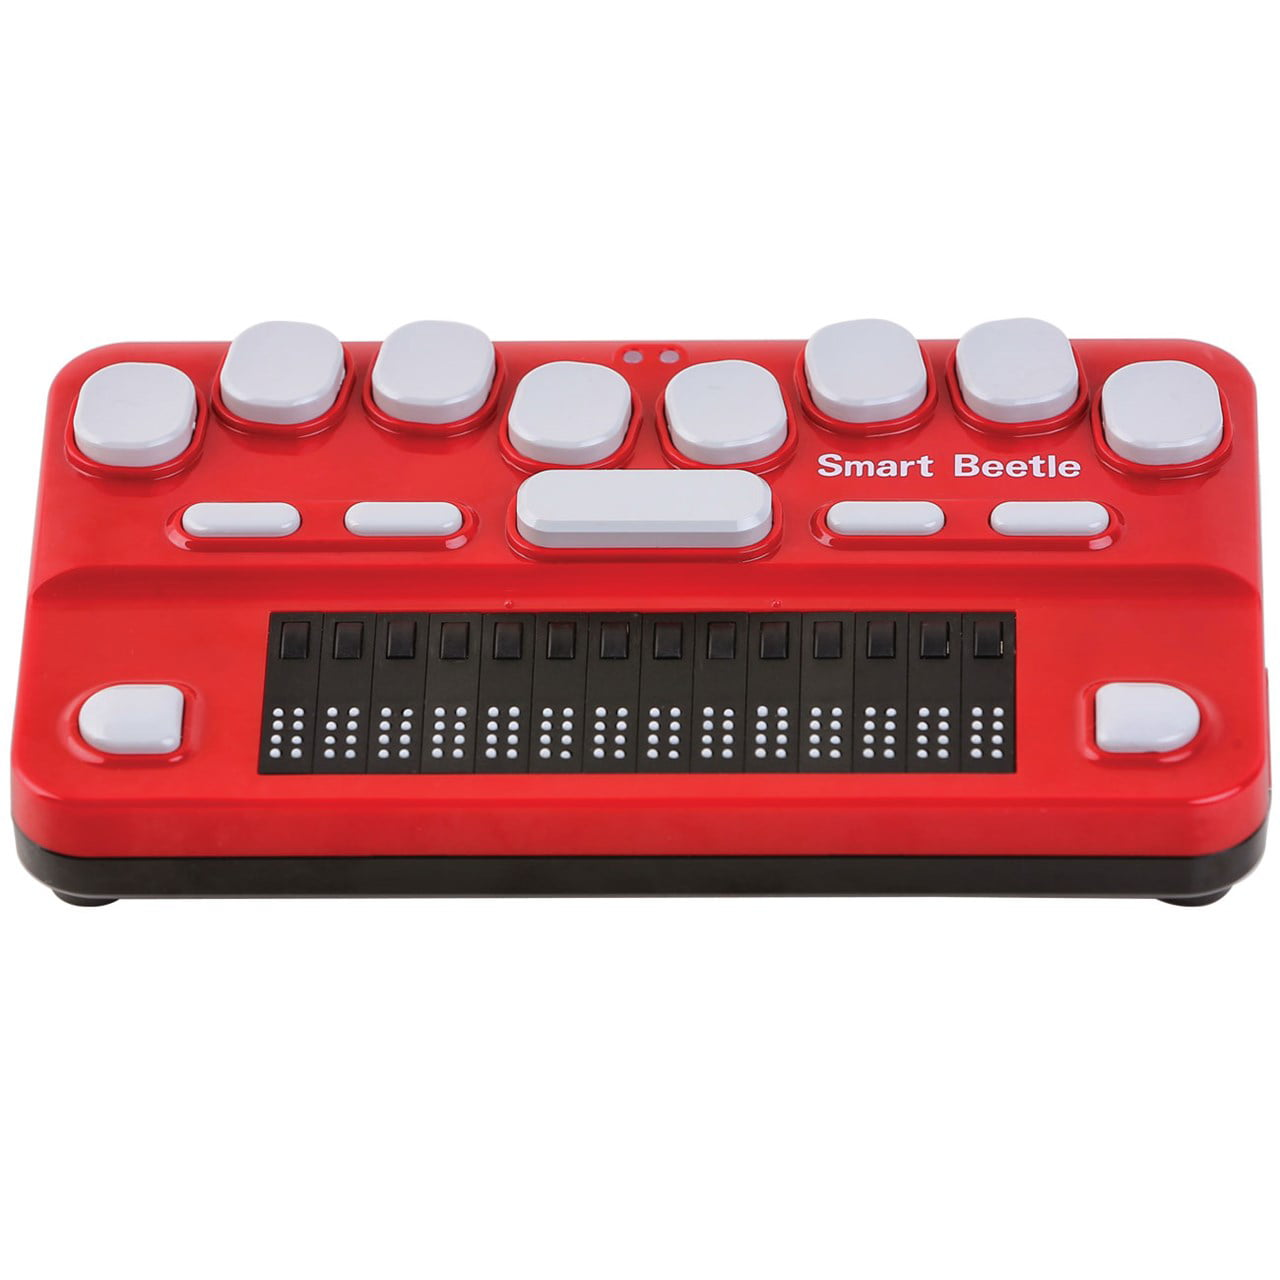 HIMS Smart Beetle Bluetooth USB UltraPortable Braille Display Keyboard by HIMS